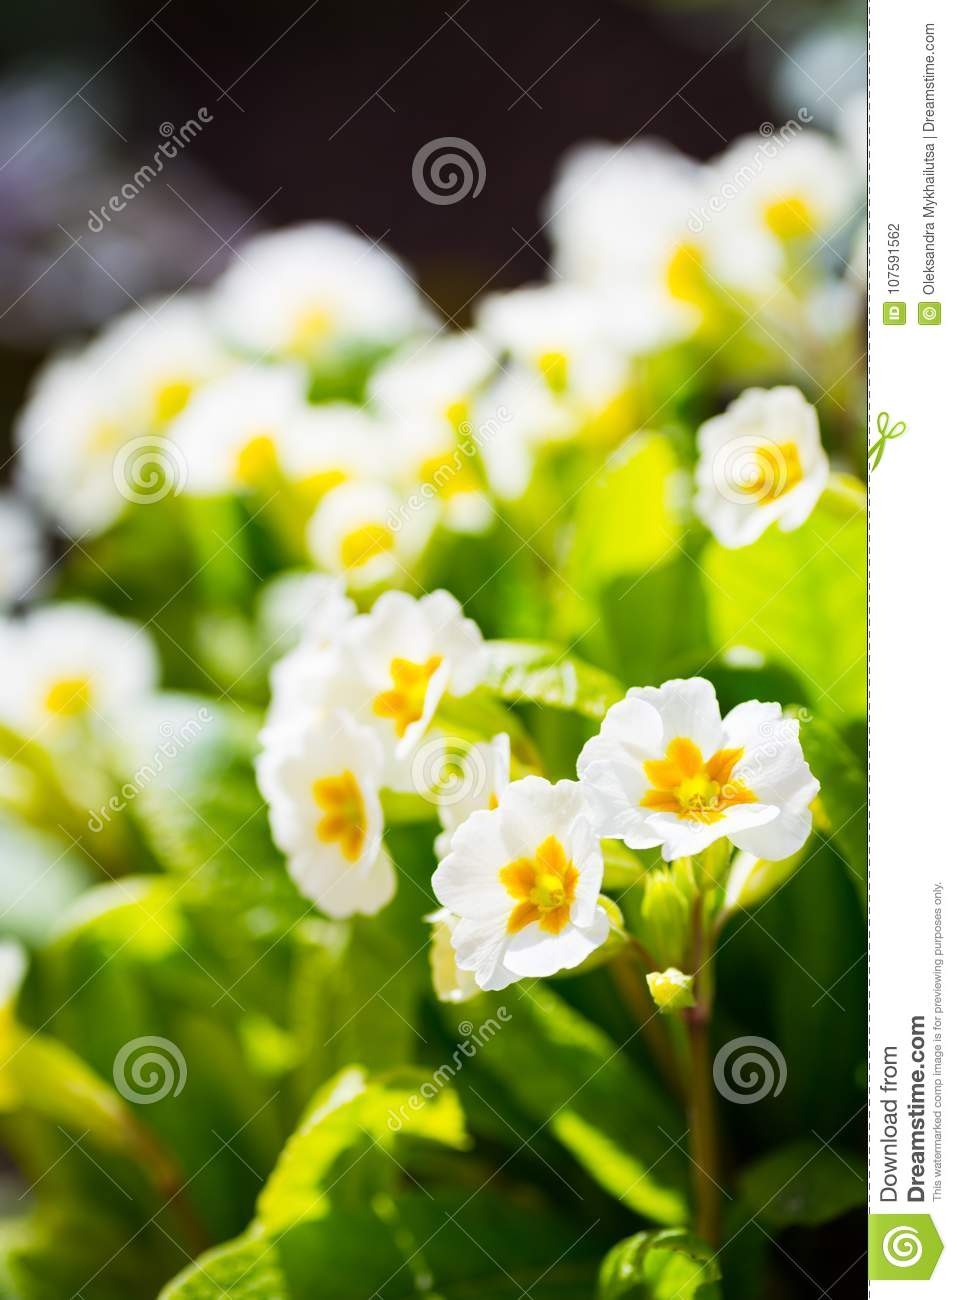 White And Yellow Primrose Flowers At Sunny Day In Garden Stock Photo